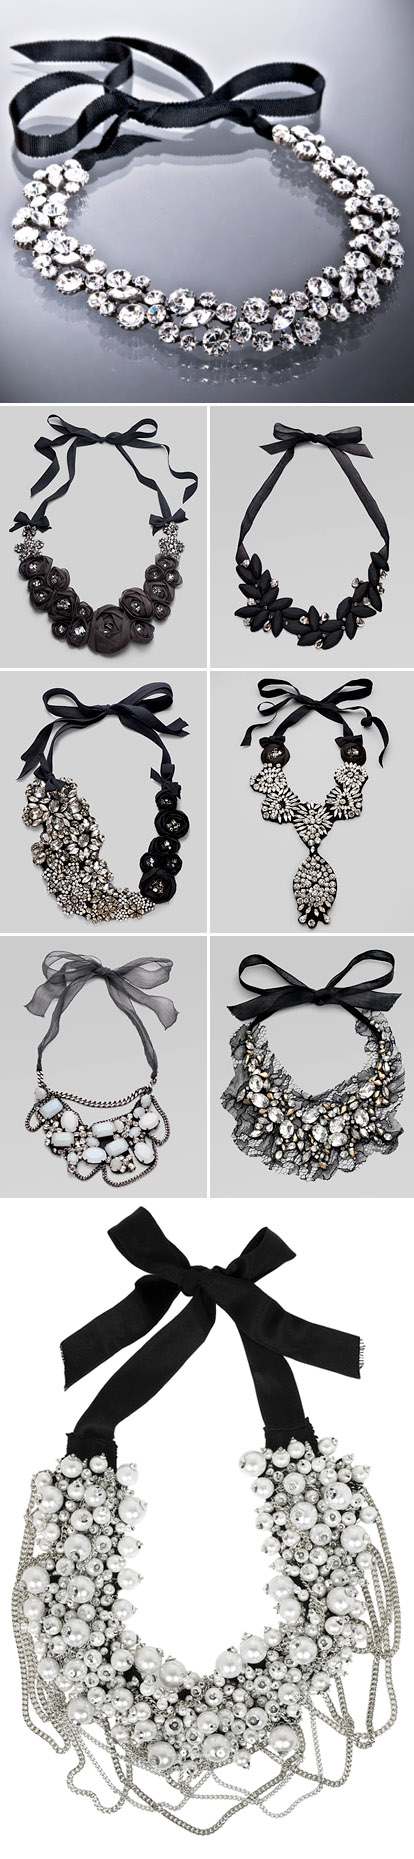 Black and white wedding jewelry and accessories, black ribbon, pearl and crystal bib necklaces